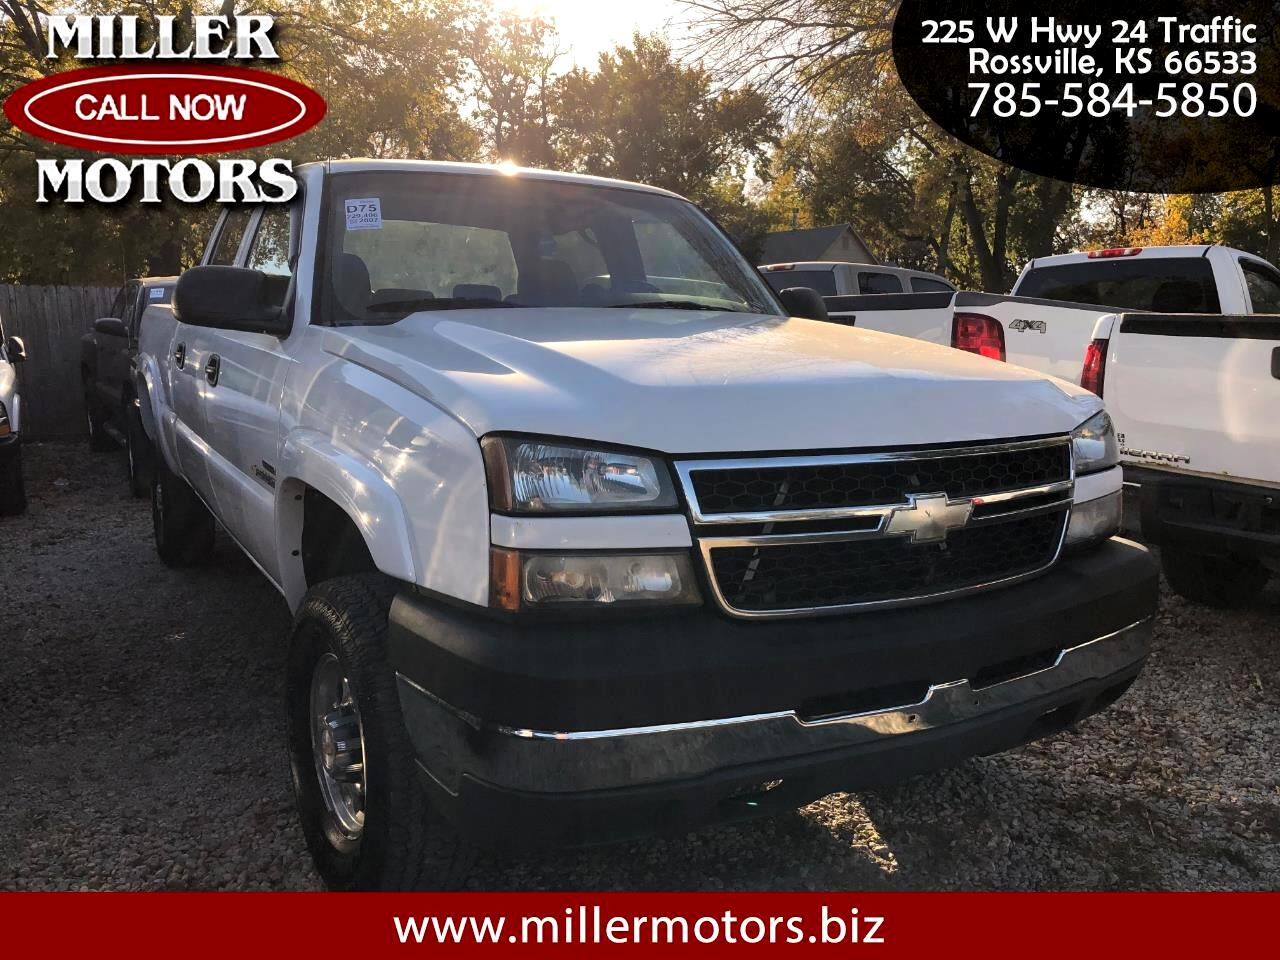 Used Cars For Sale Rossville Ks 66533 Miller Motors 2007 Silverado 2500hd Fuel Filter Chevrolet Classic 4wd Crew Cab 153 Lt2